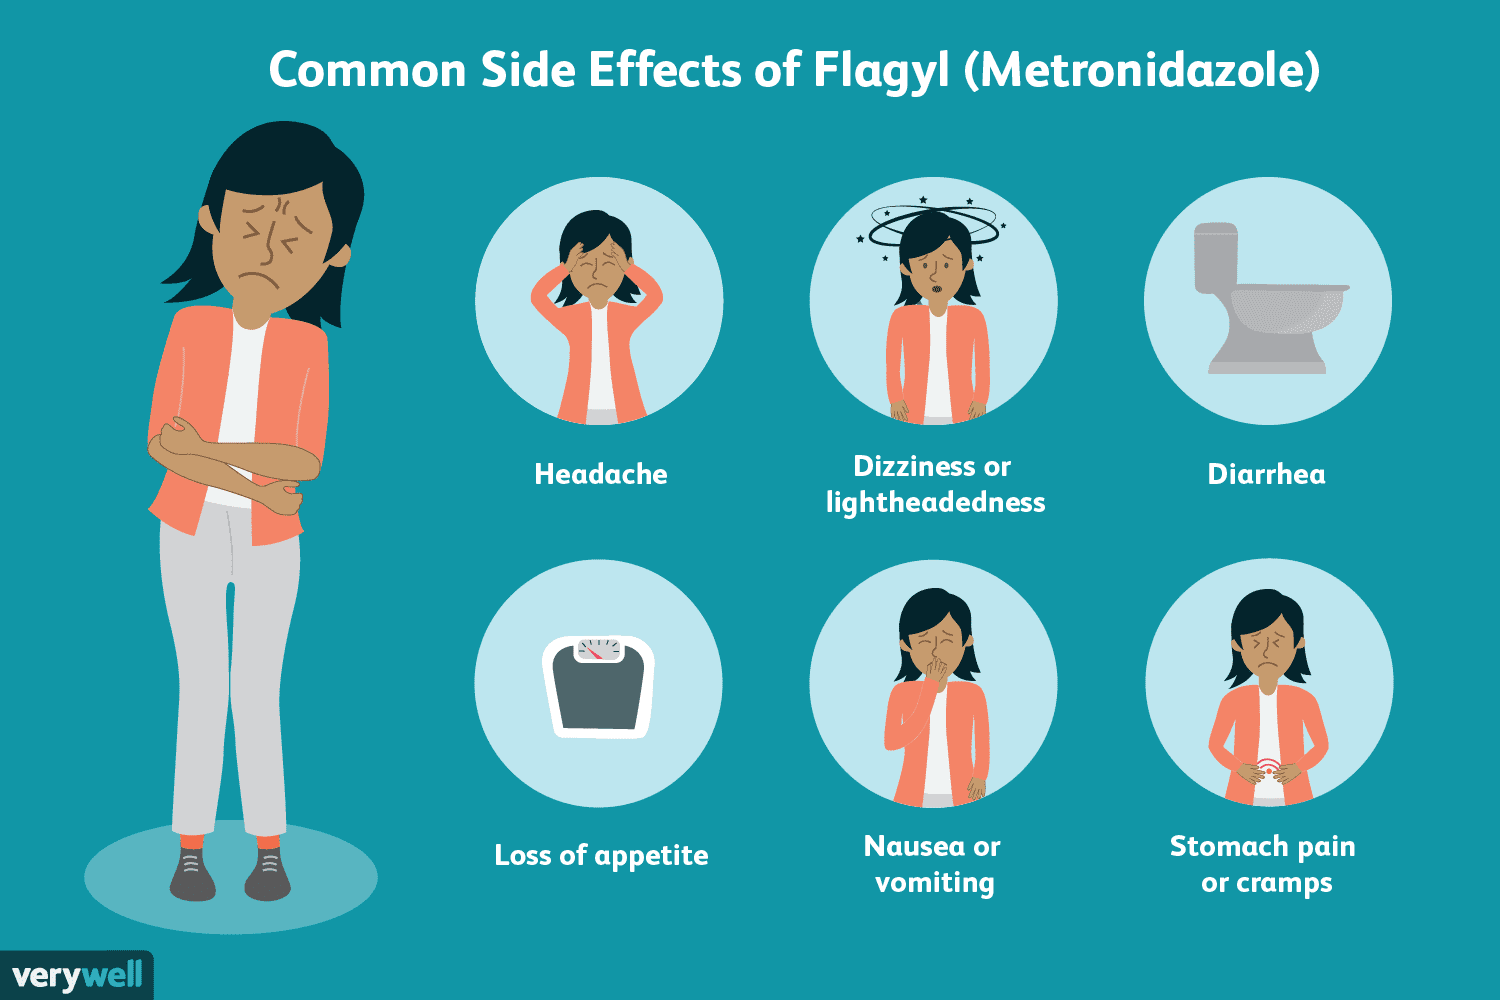 Common Side Effects of Flagyl (Metronidazole)